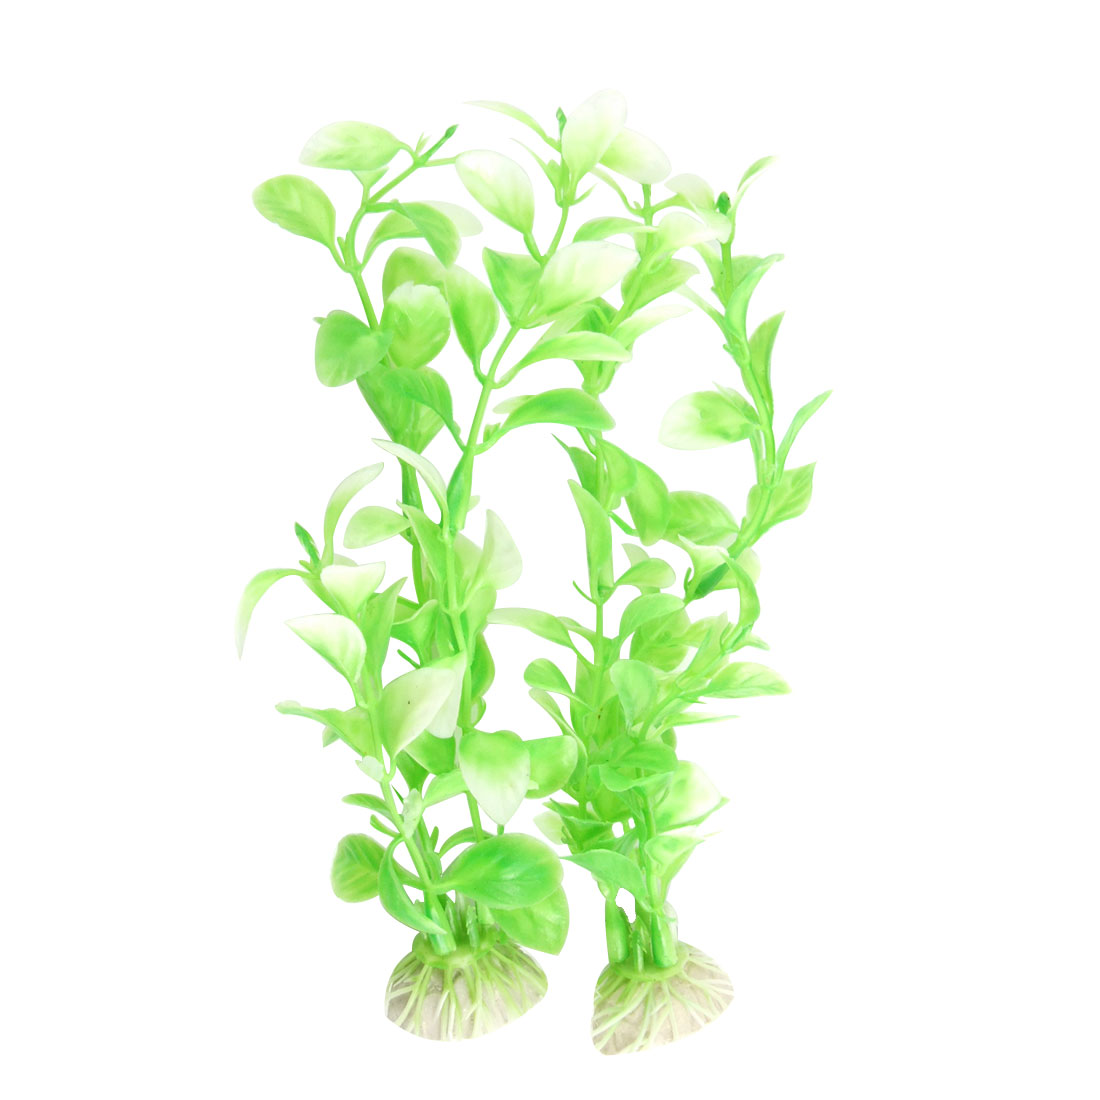 2 Pcs Green Plastic Grass Underwater Plant for Tank Pond